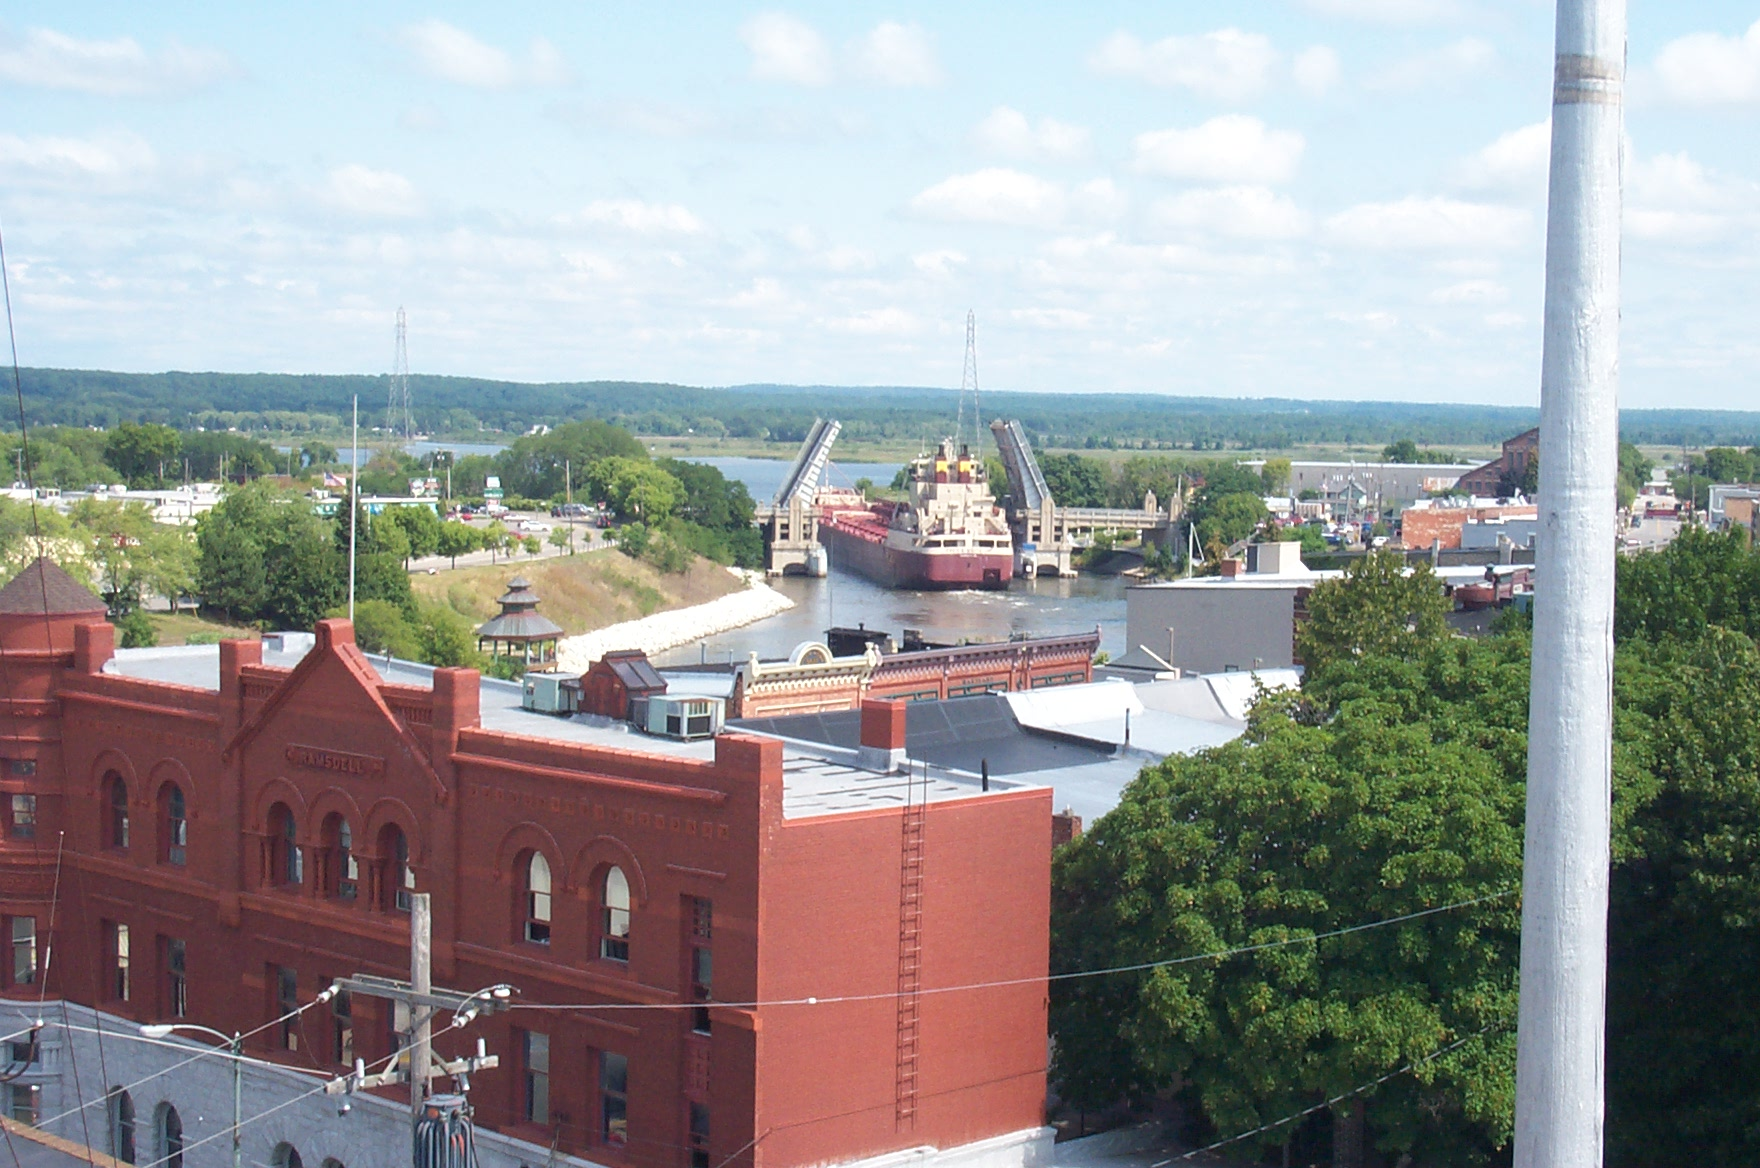 Photo taken from the roof of City Hall that shows the Great Lakes Freighter Fred White as it passes through Memorial Bridge the Ramsdell Building is seen in the foreground